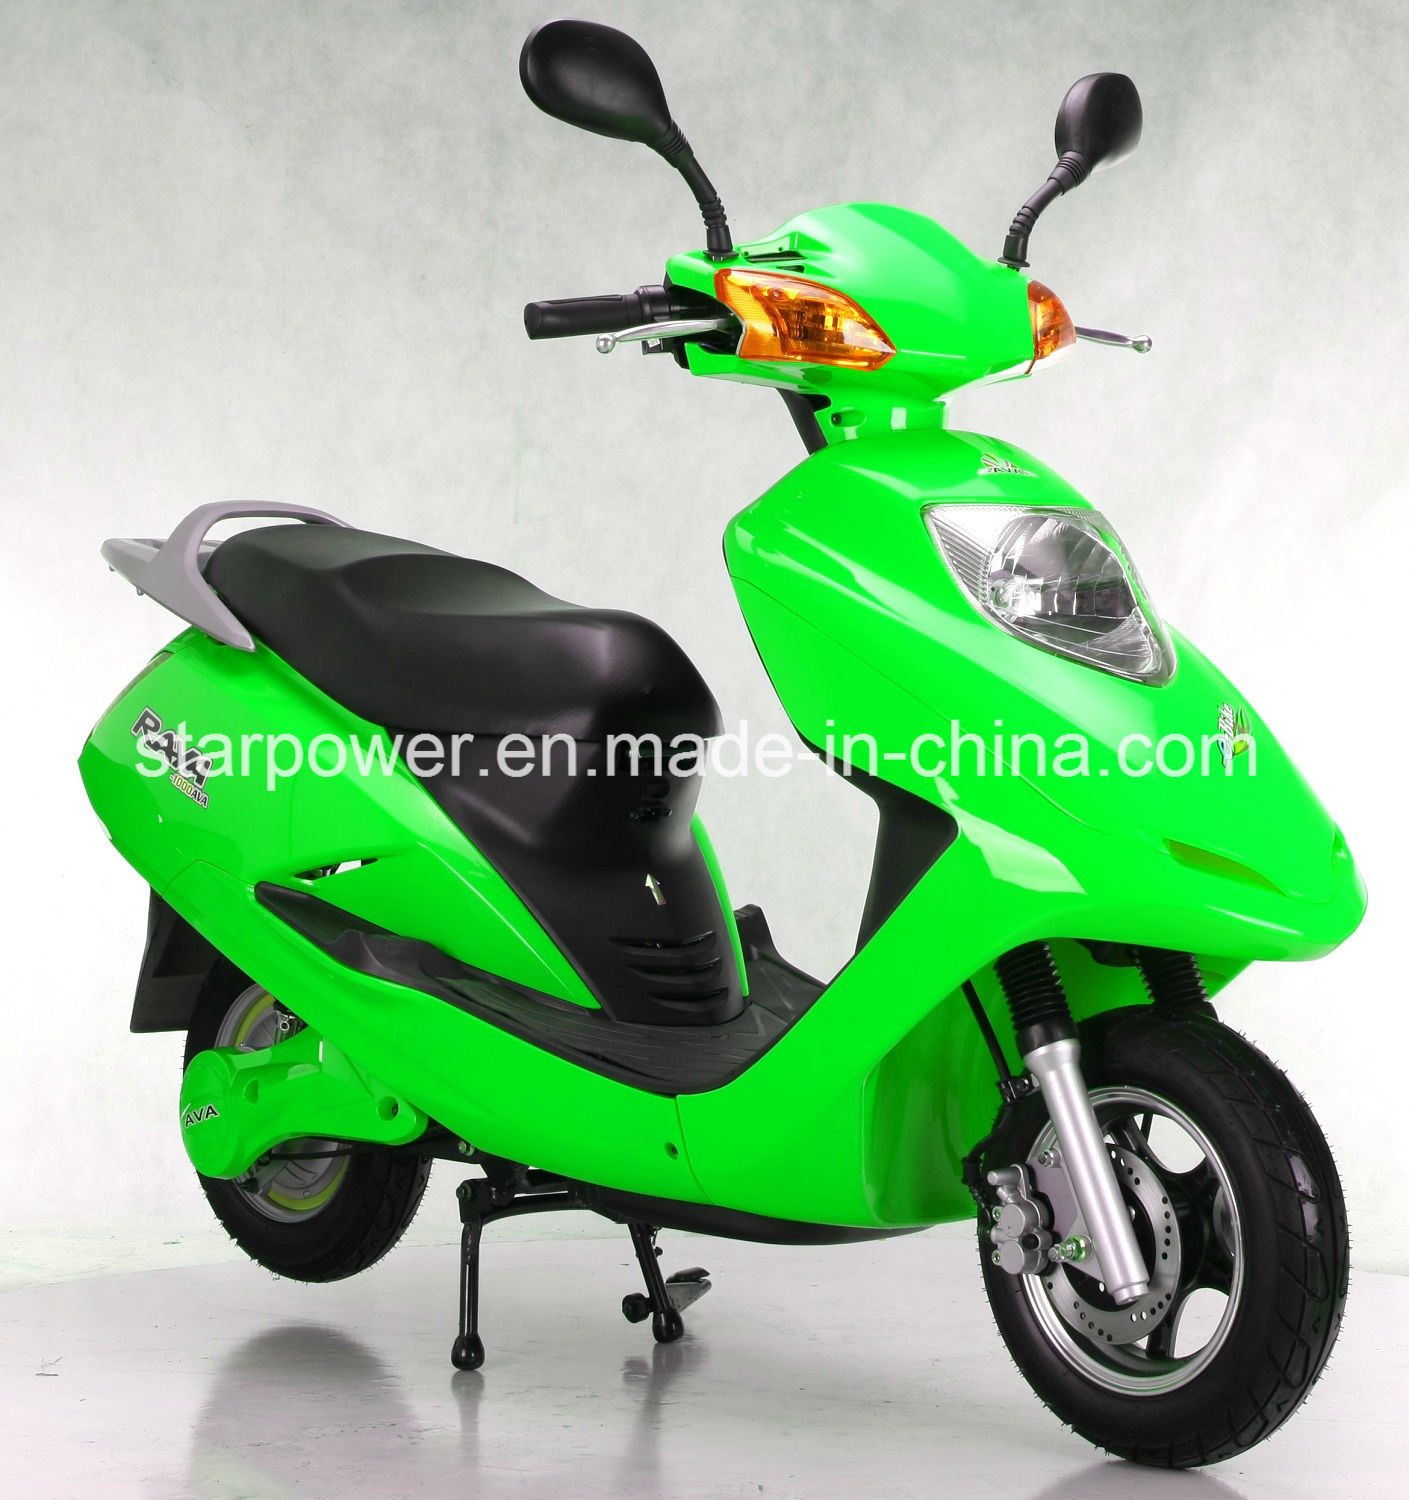 60V 20ah 1000W Powerful E Scooter From China/Electric Motorcycle/ pictures & photos